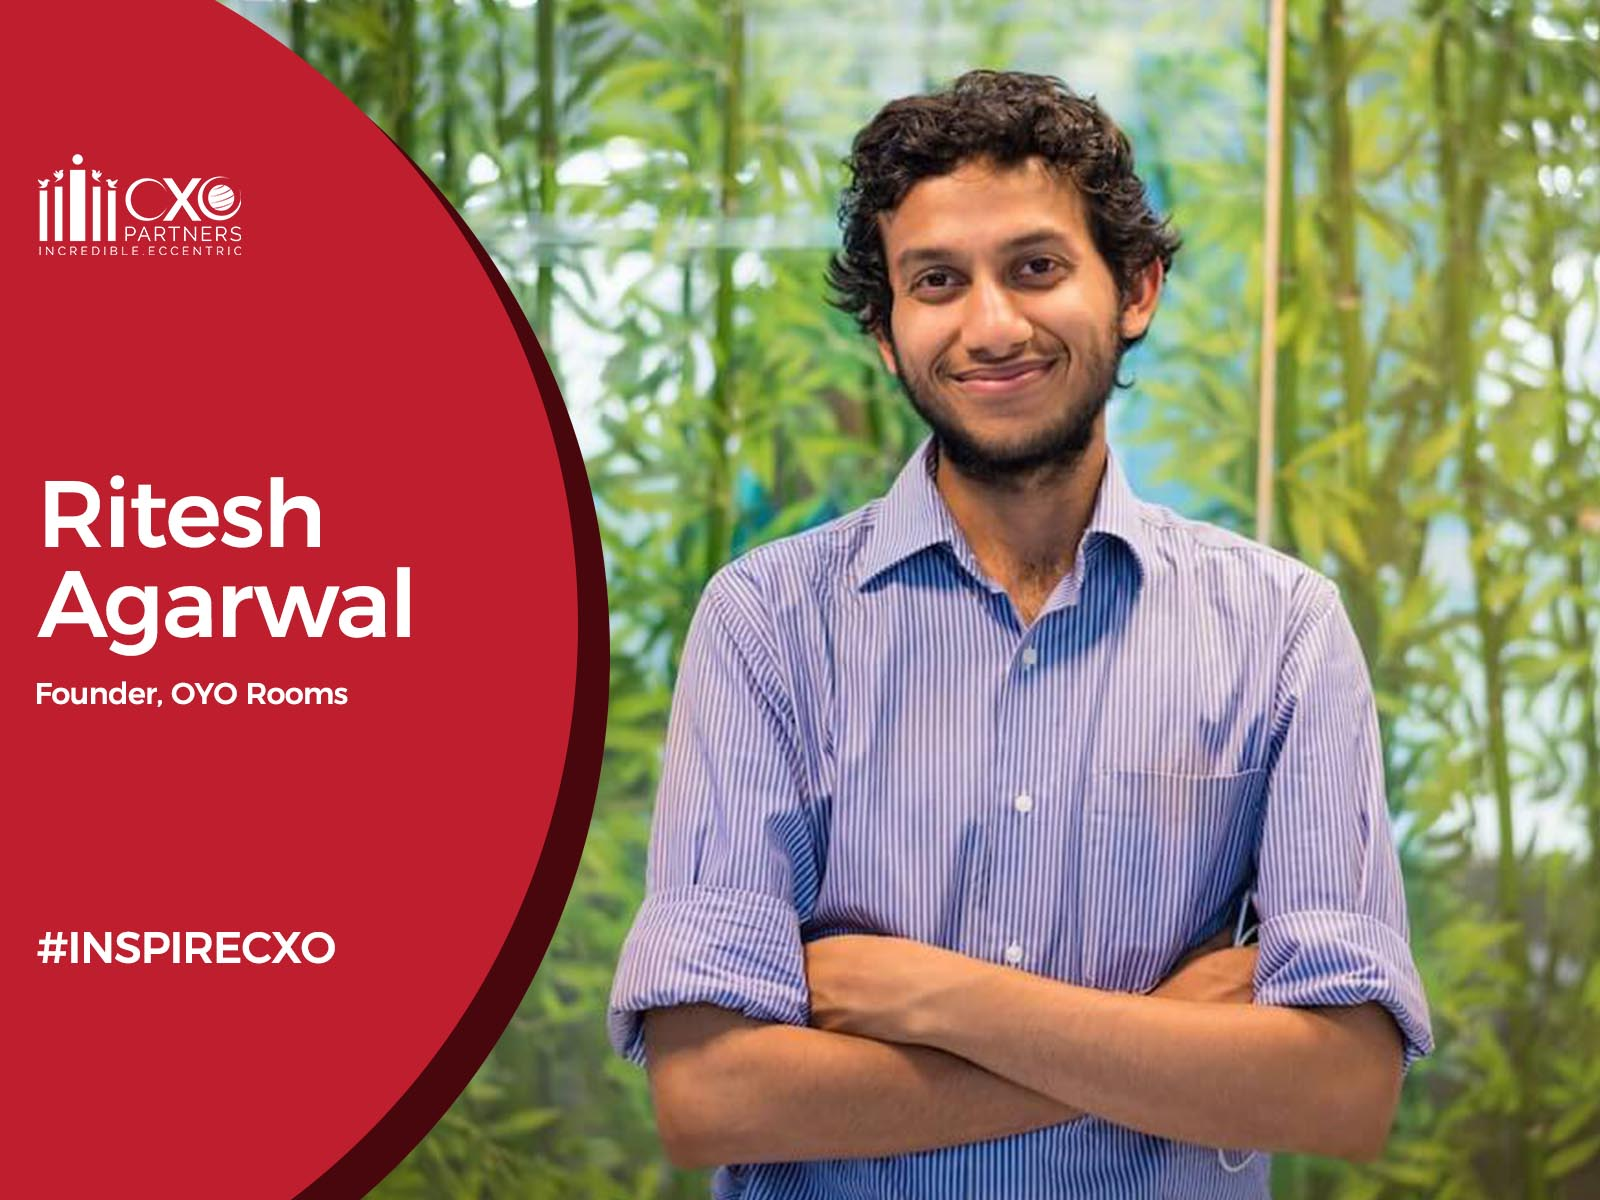 Founder of OYO - Ritesh Agarwal